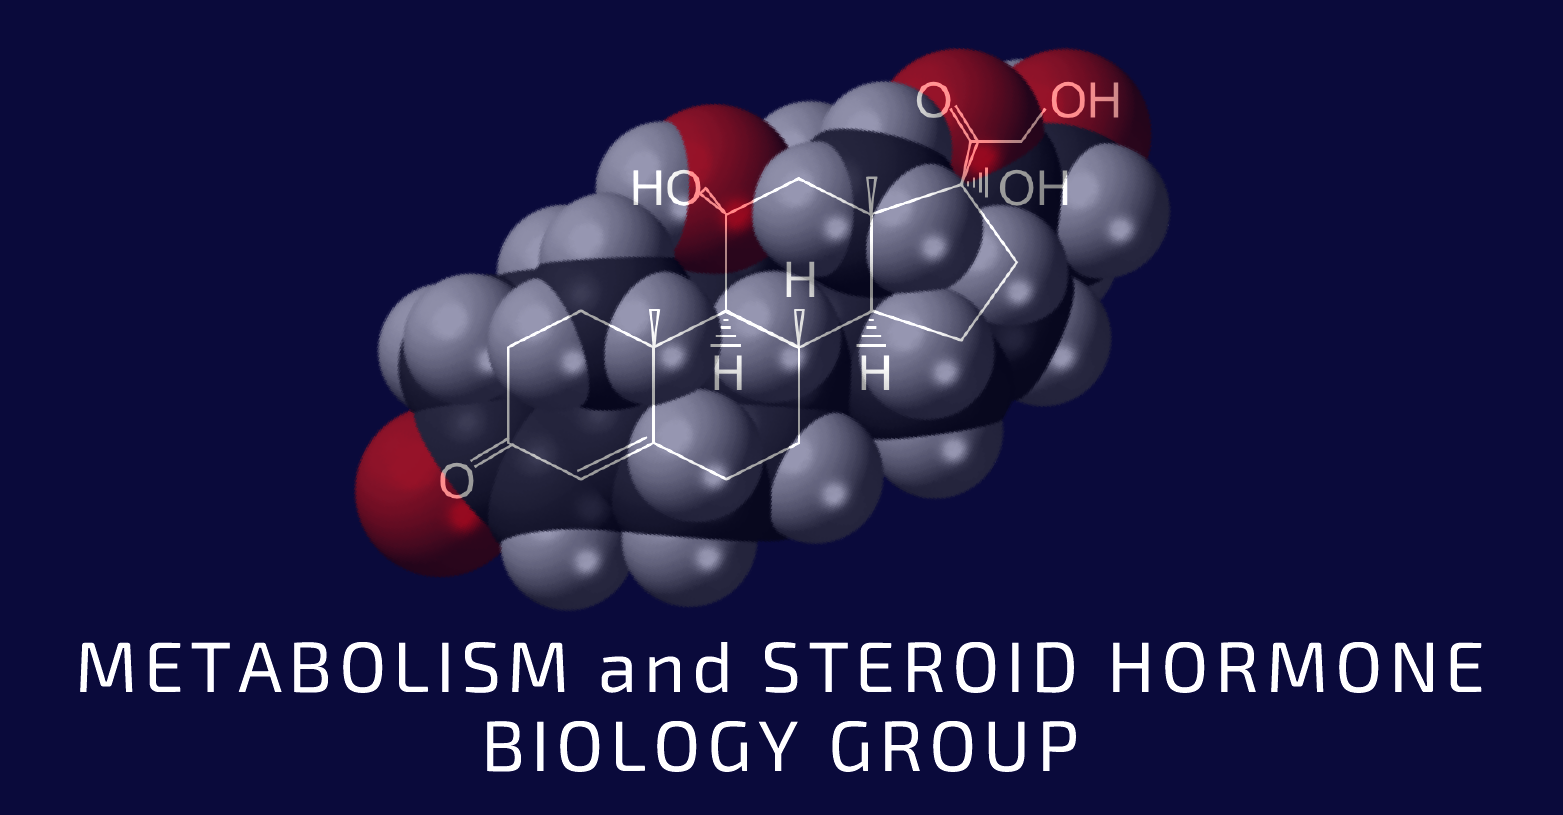 Anais Y Lili tomlinson group: metabolism and steroid hormone biology